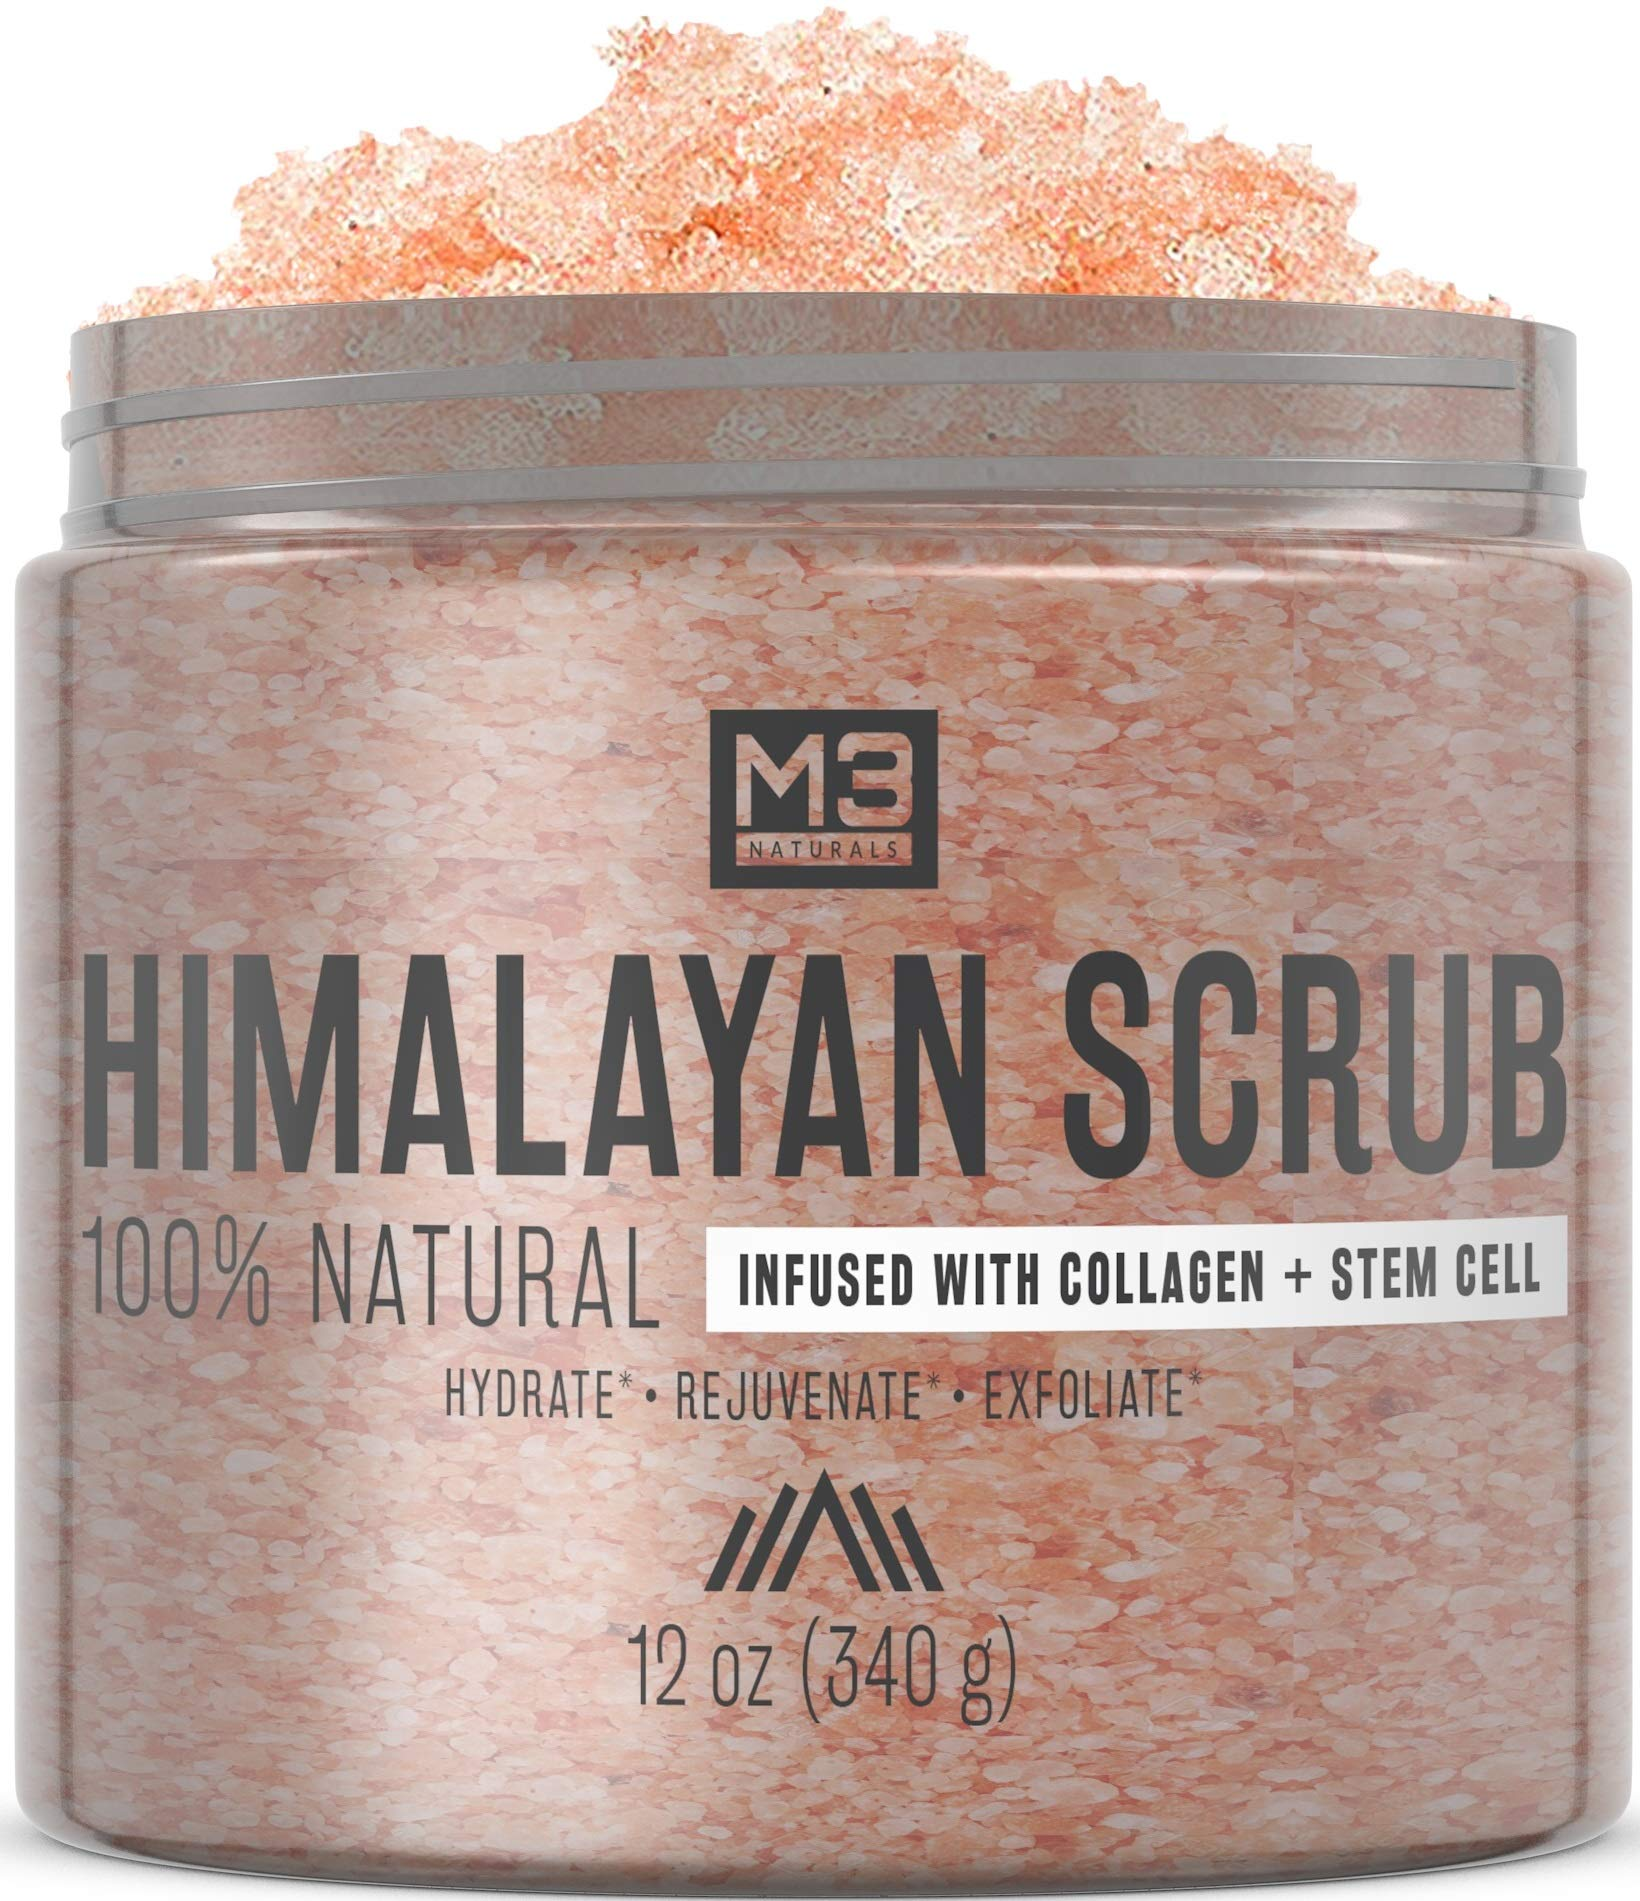 M3 Naturals - Himalayan Salt Infused with Collagen & Stem Cell Body Scrub